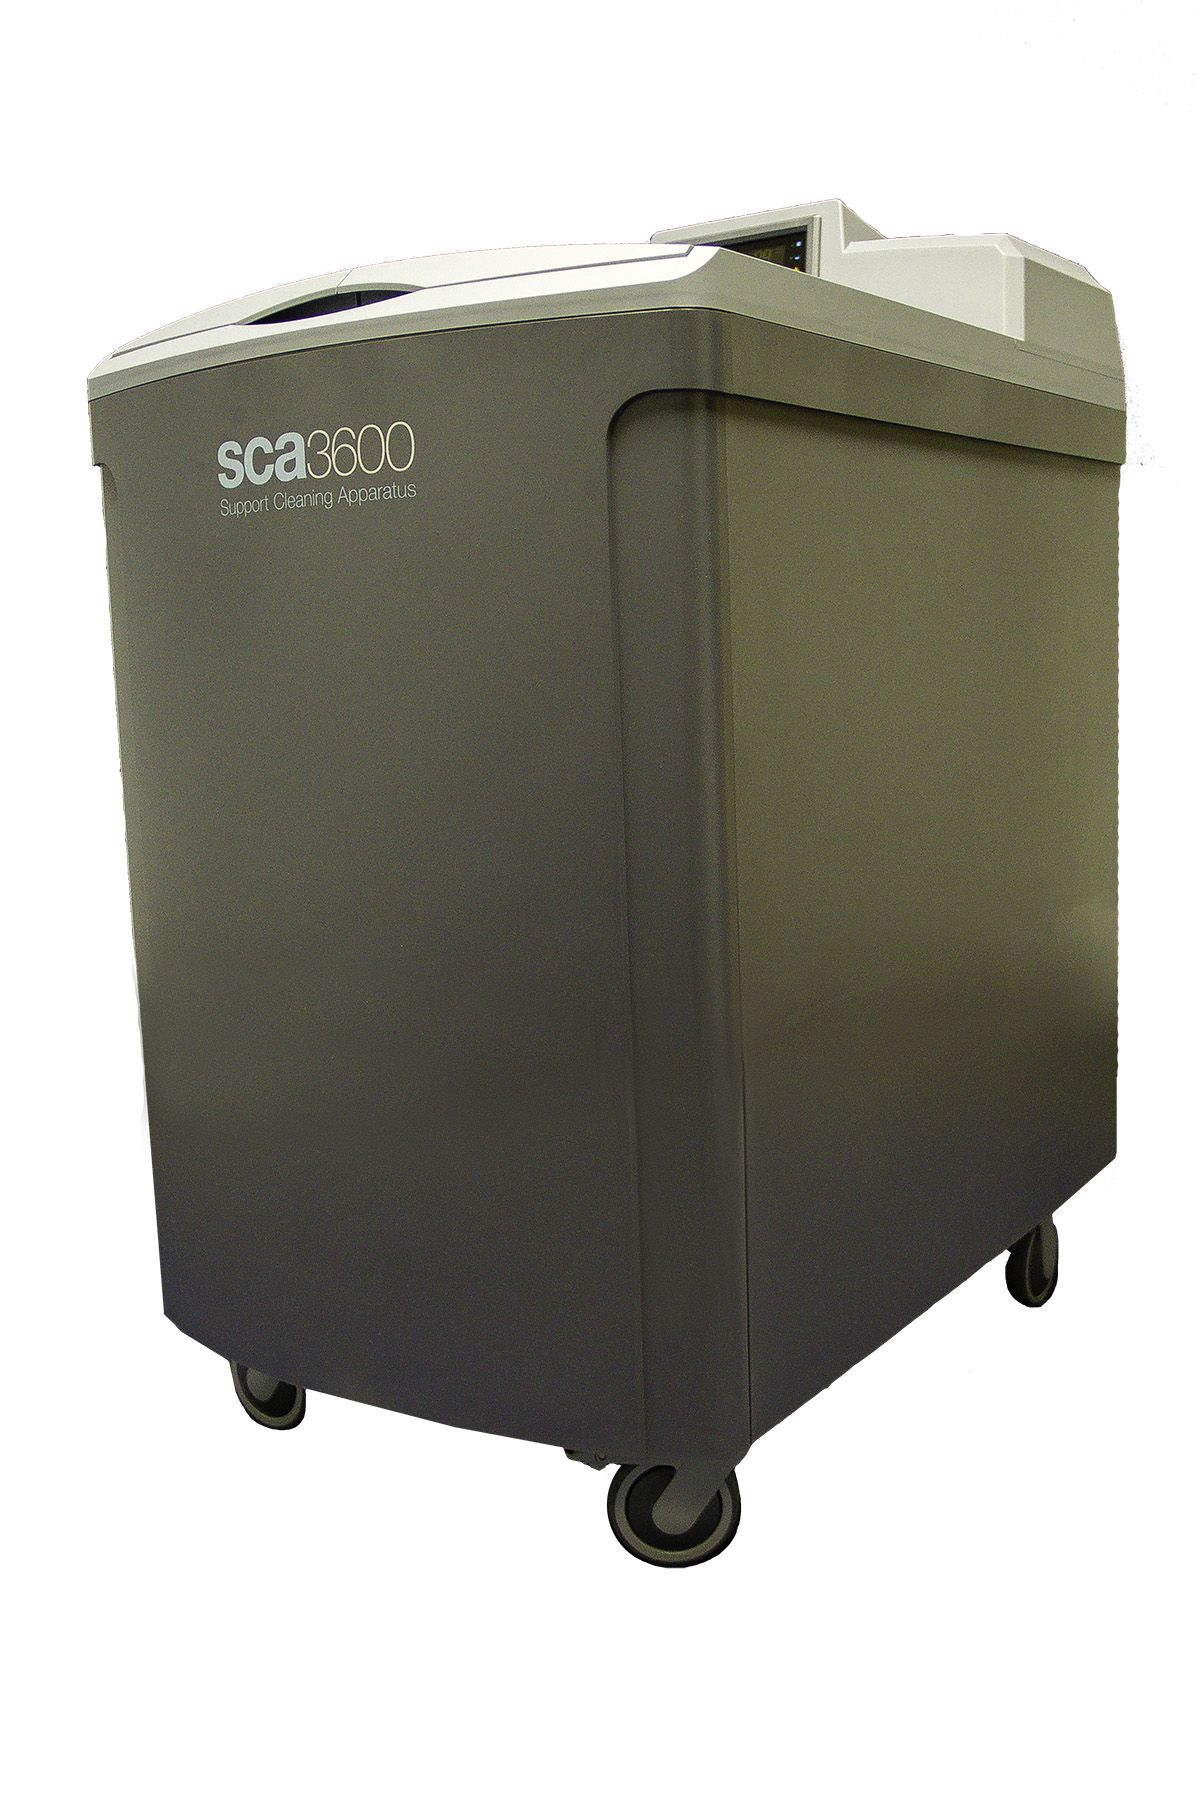 The PADT SCA 3600 is known for its robustness and capacity.